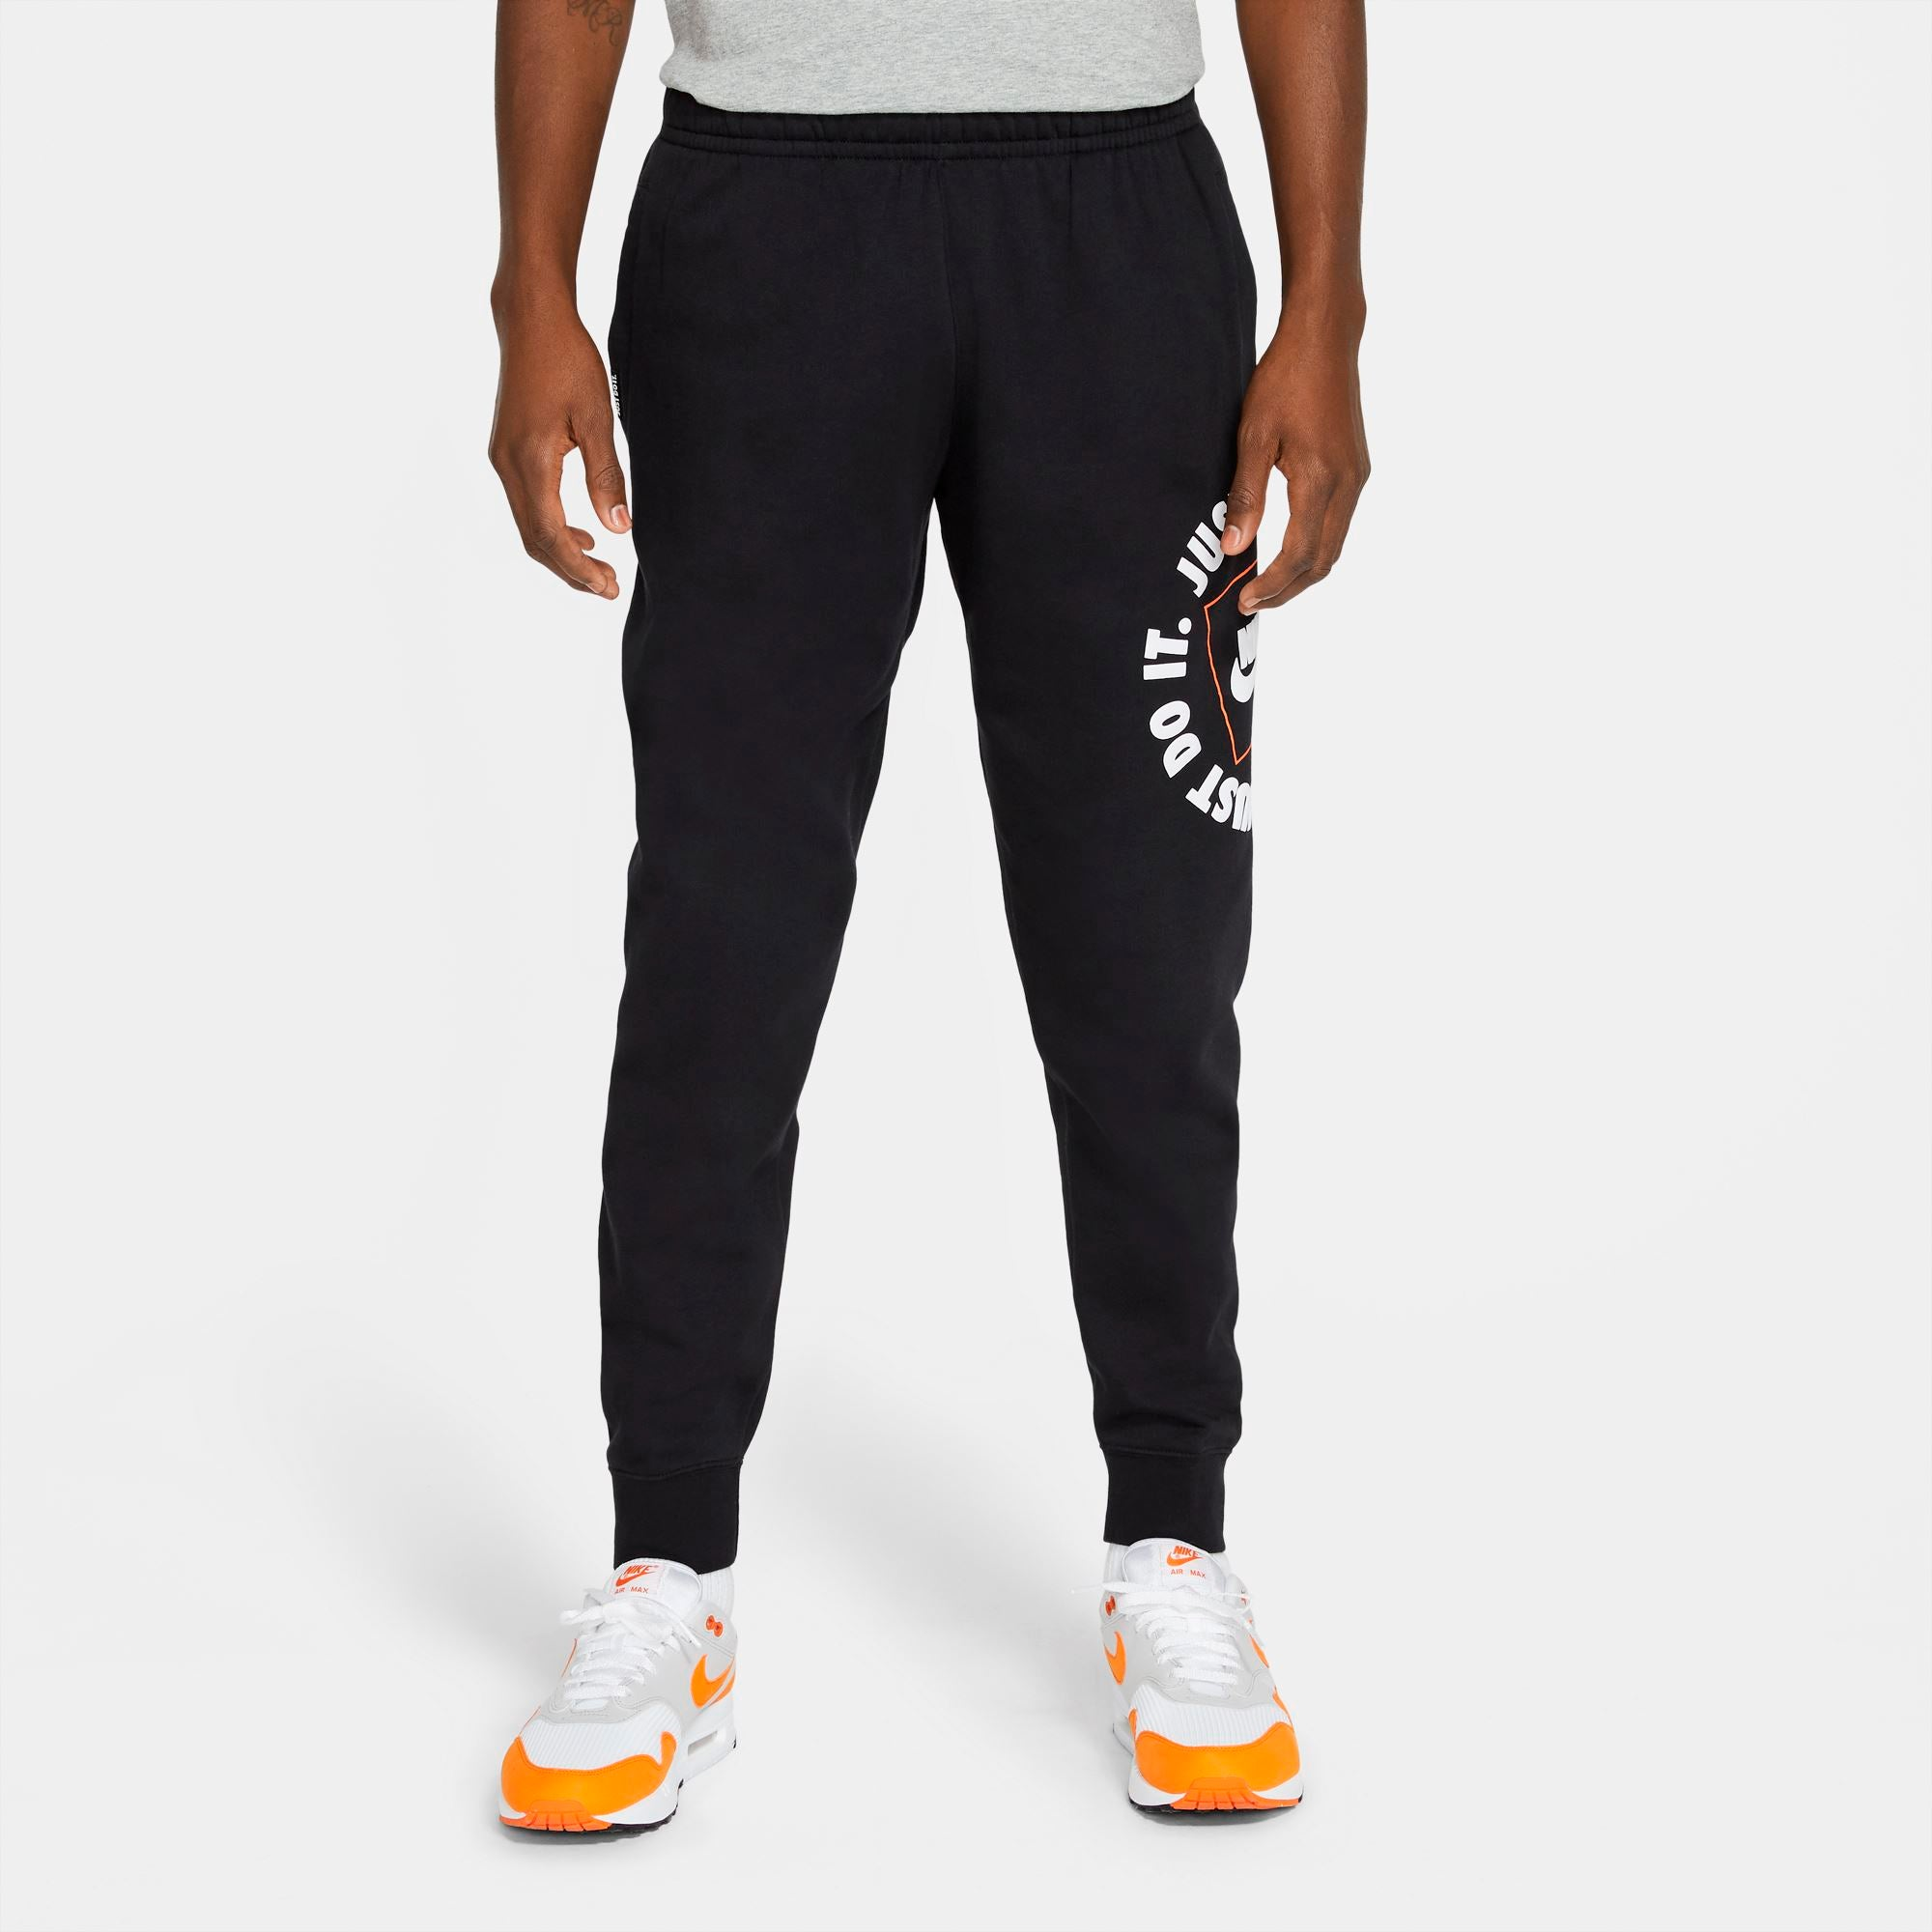 Nike Sportswear Jdi - Black/Black SP-ApparelTees-Mens Nike